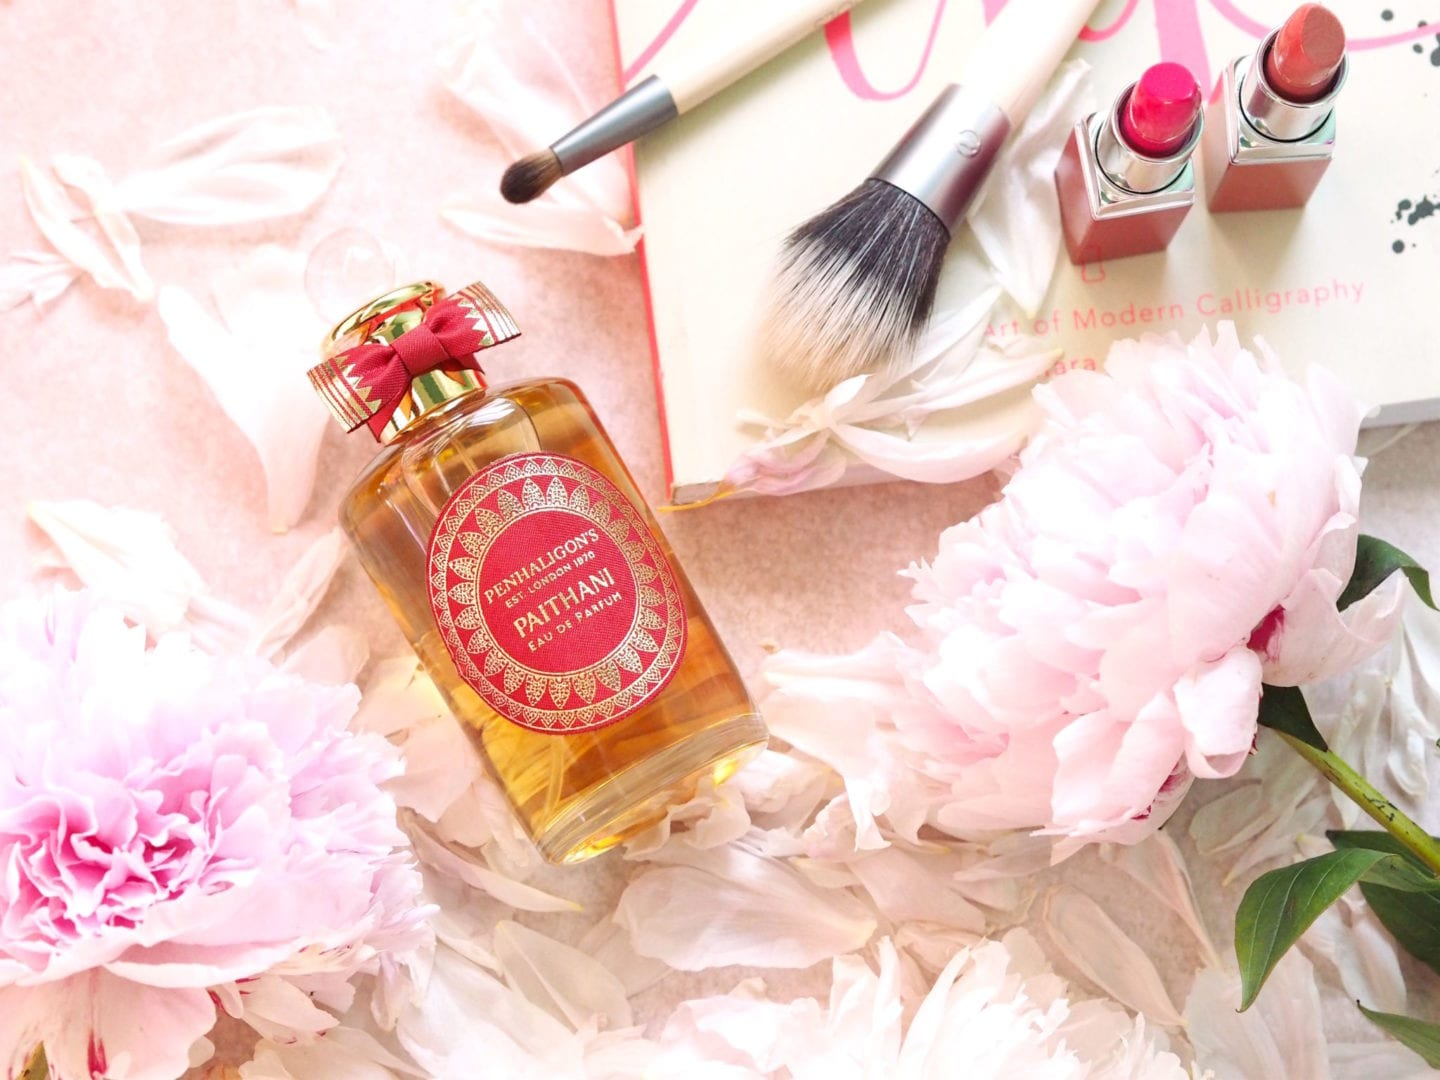 Penhaligon's 'Paithani' perfume fragrance review